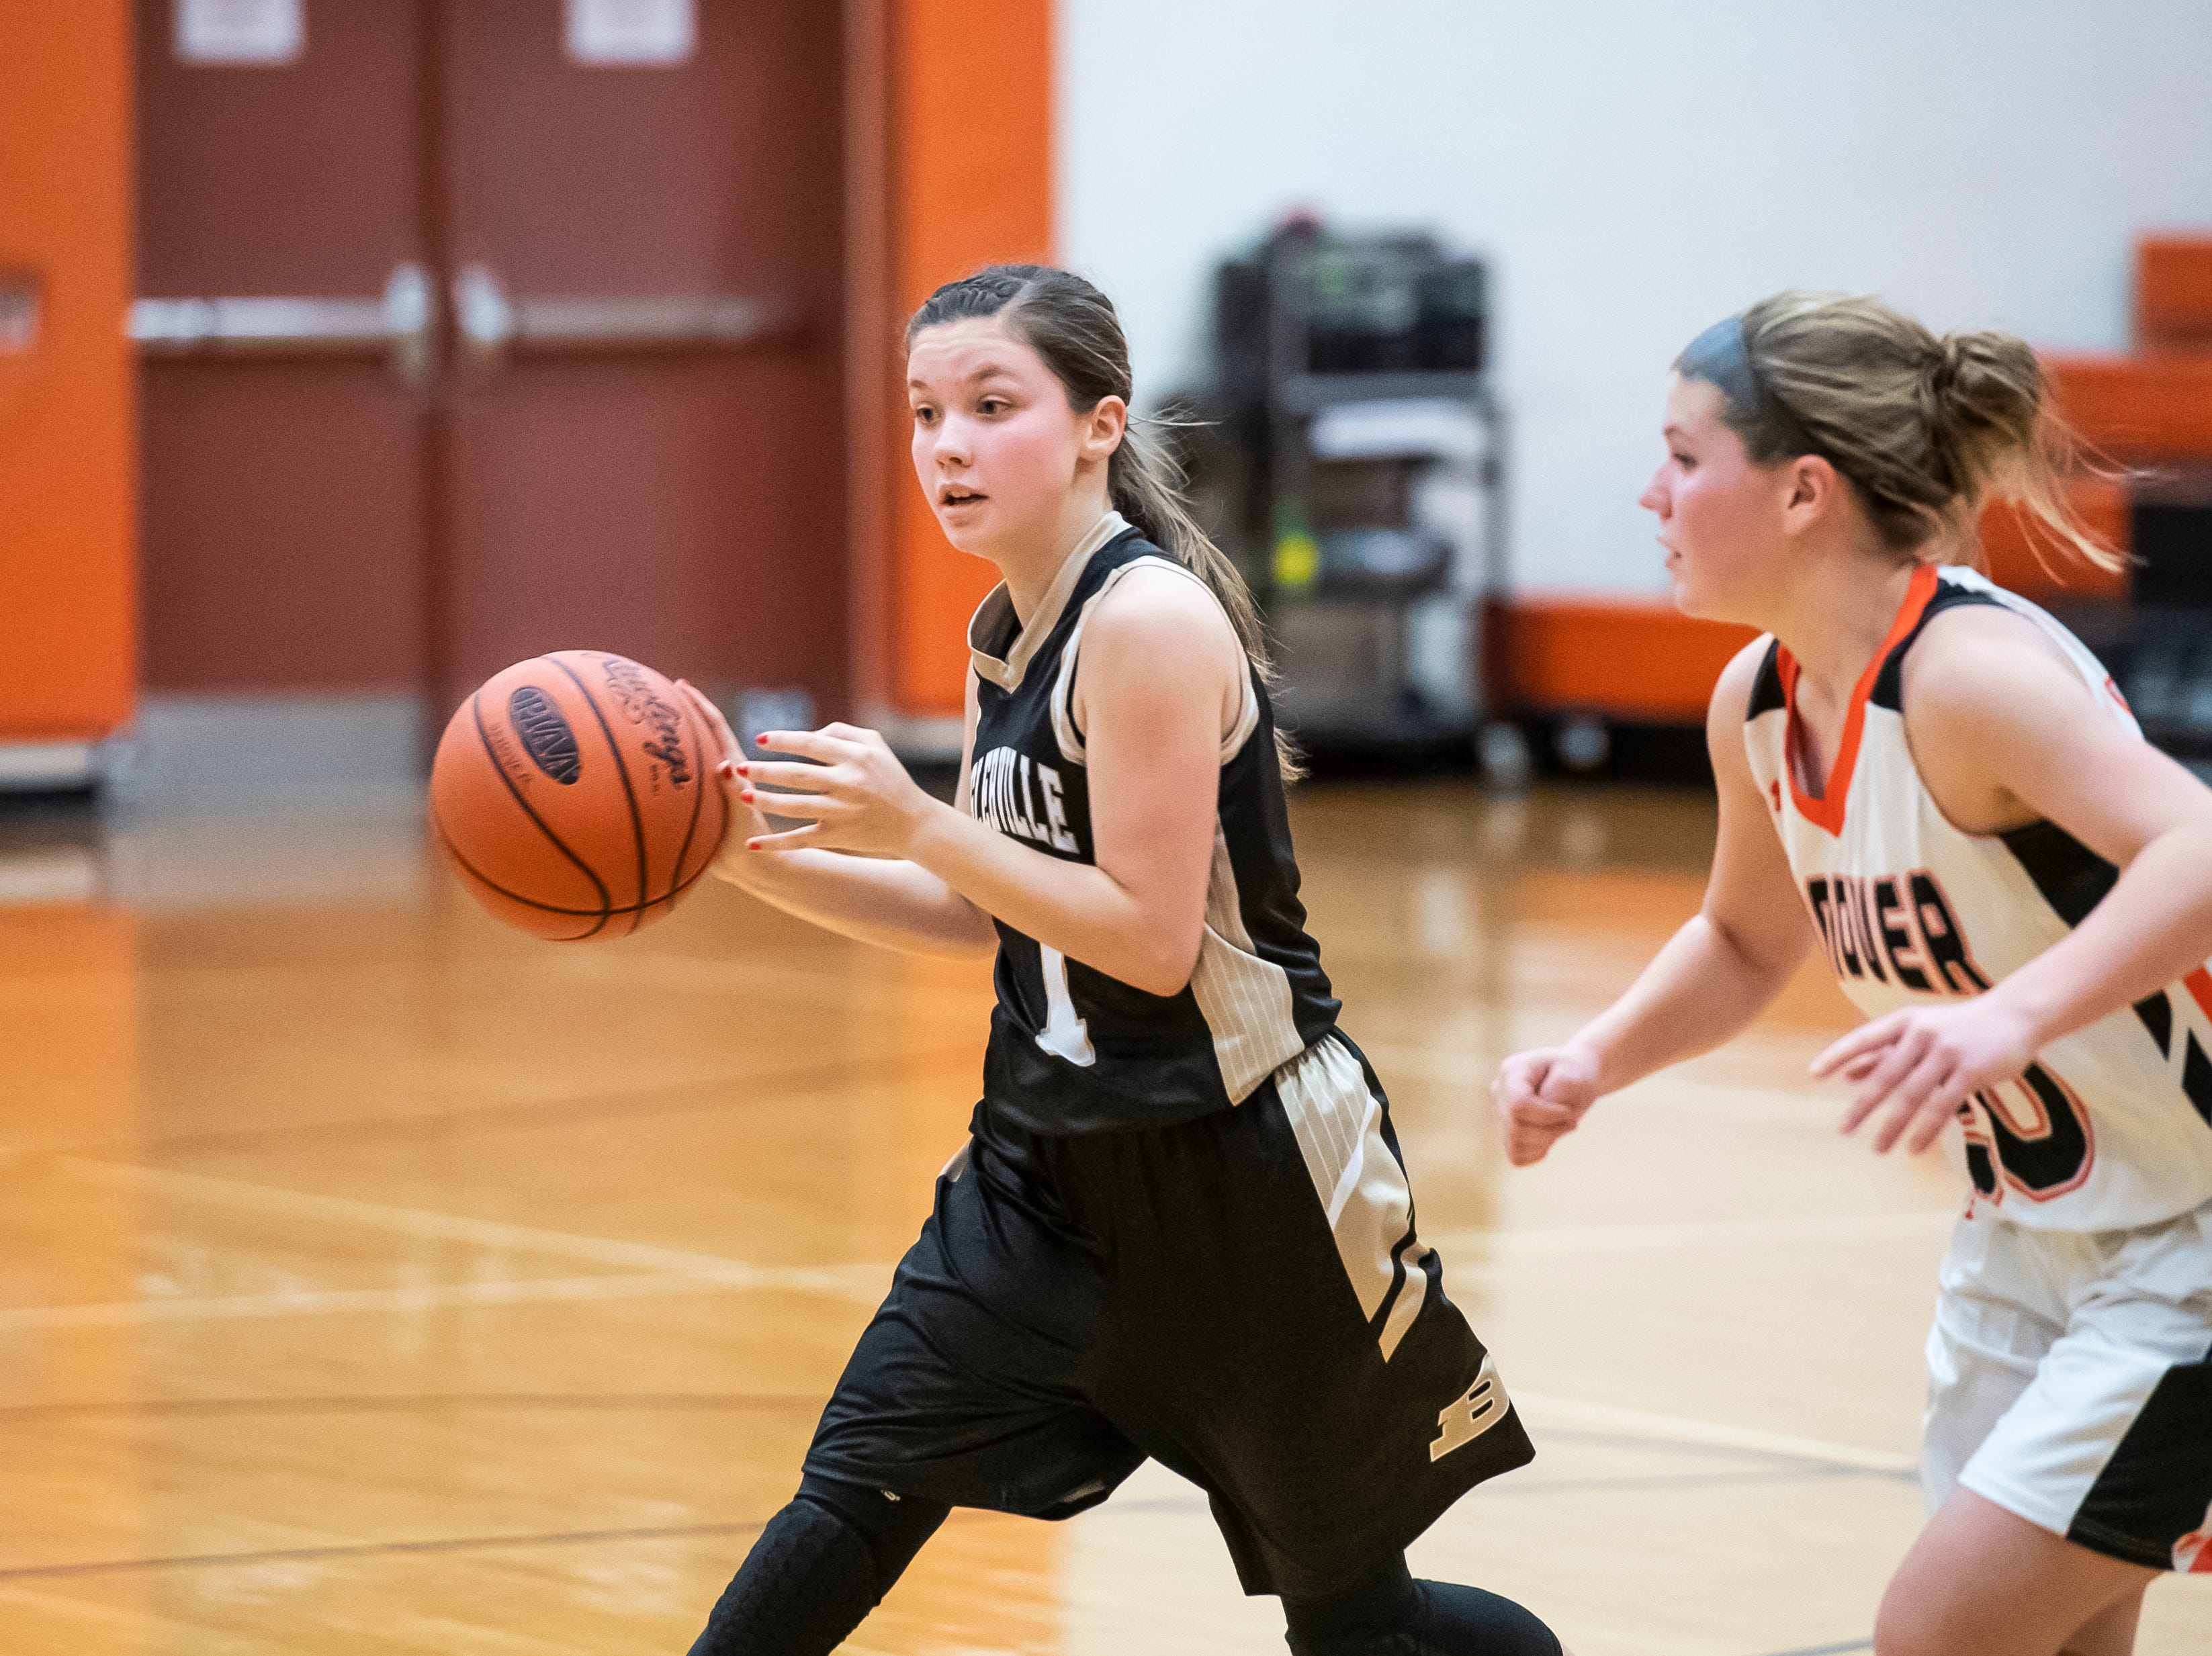 Biglerville's Lexie Williams passes the ball during play against Hanover in the championship game of the Hanover Holiday Classic on Friday, December 28, 2018. Hanover won 30-20.